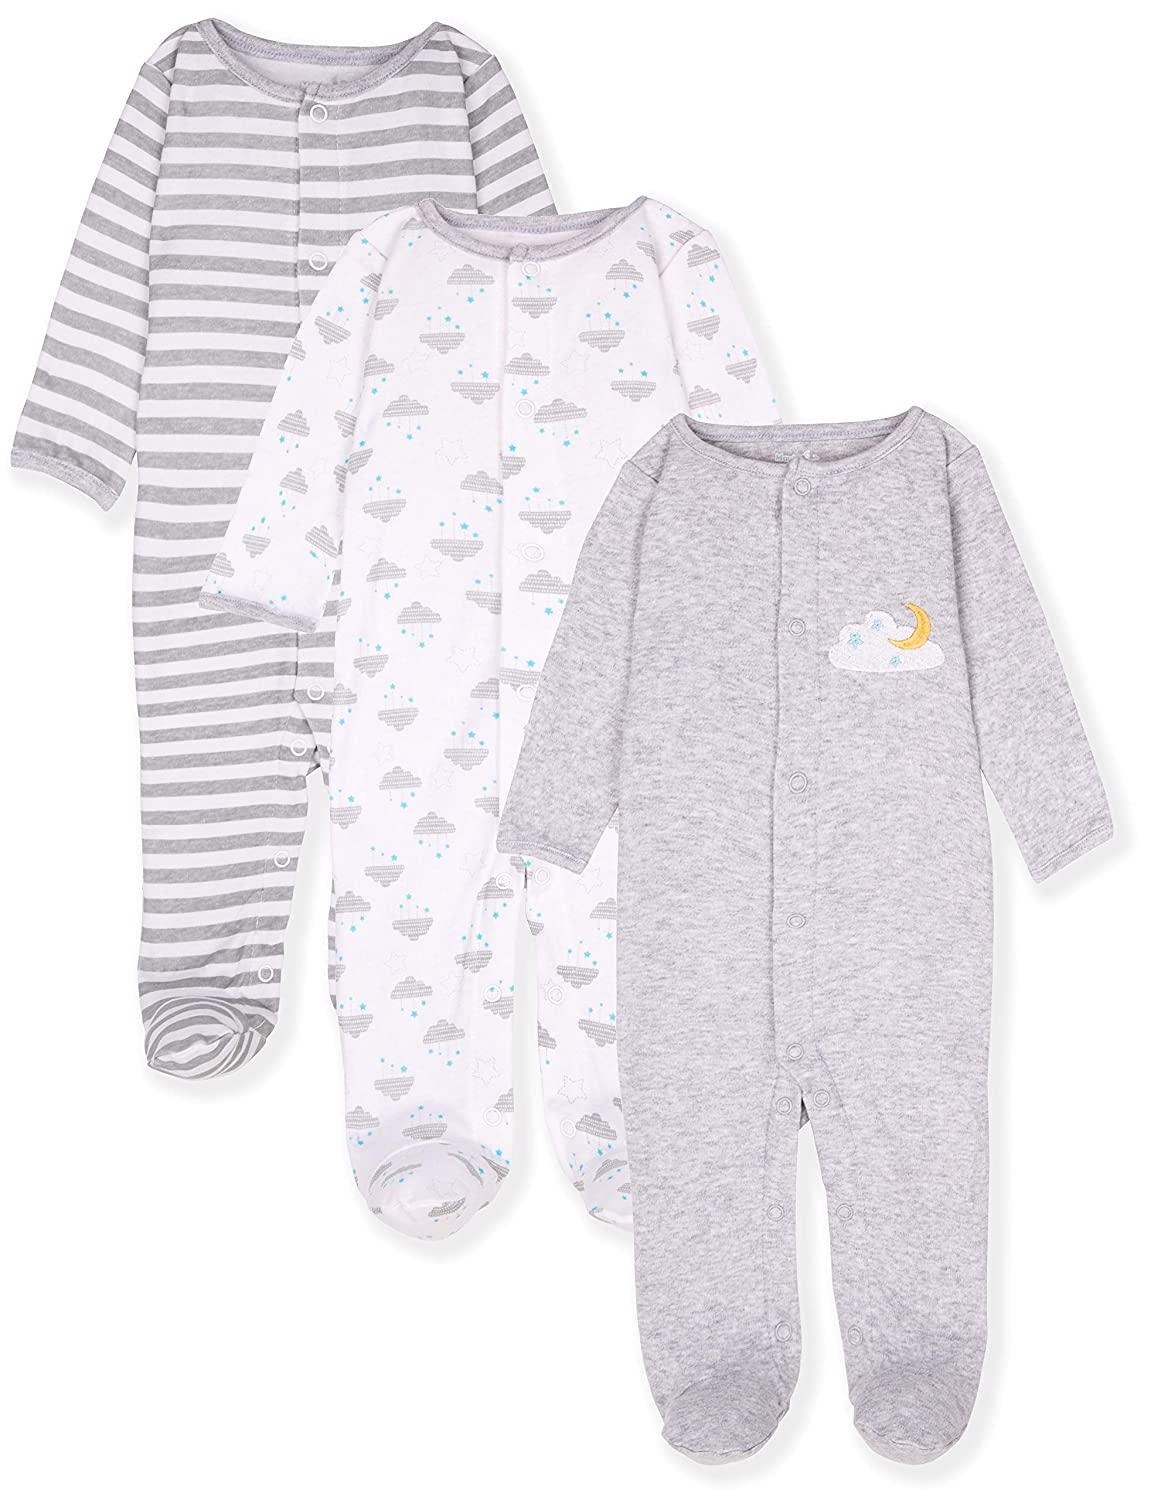 Maybe Baby Kids Infant Boys' and Girls' 3 Pack Cotton Snap Sleep & Play Set w/Footies